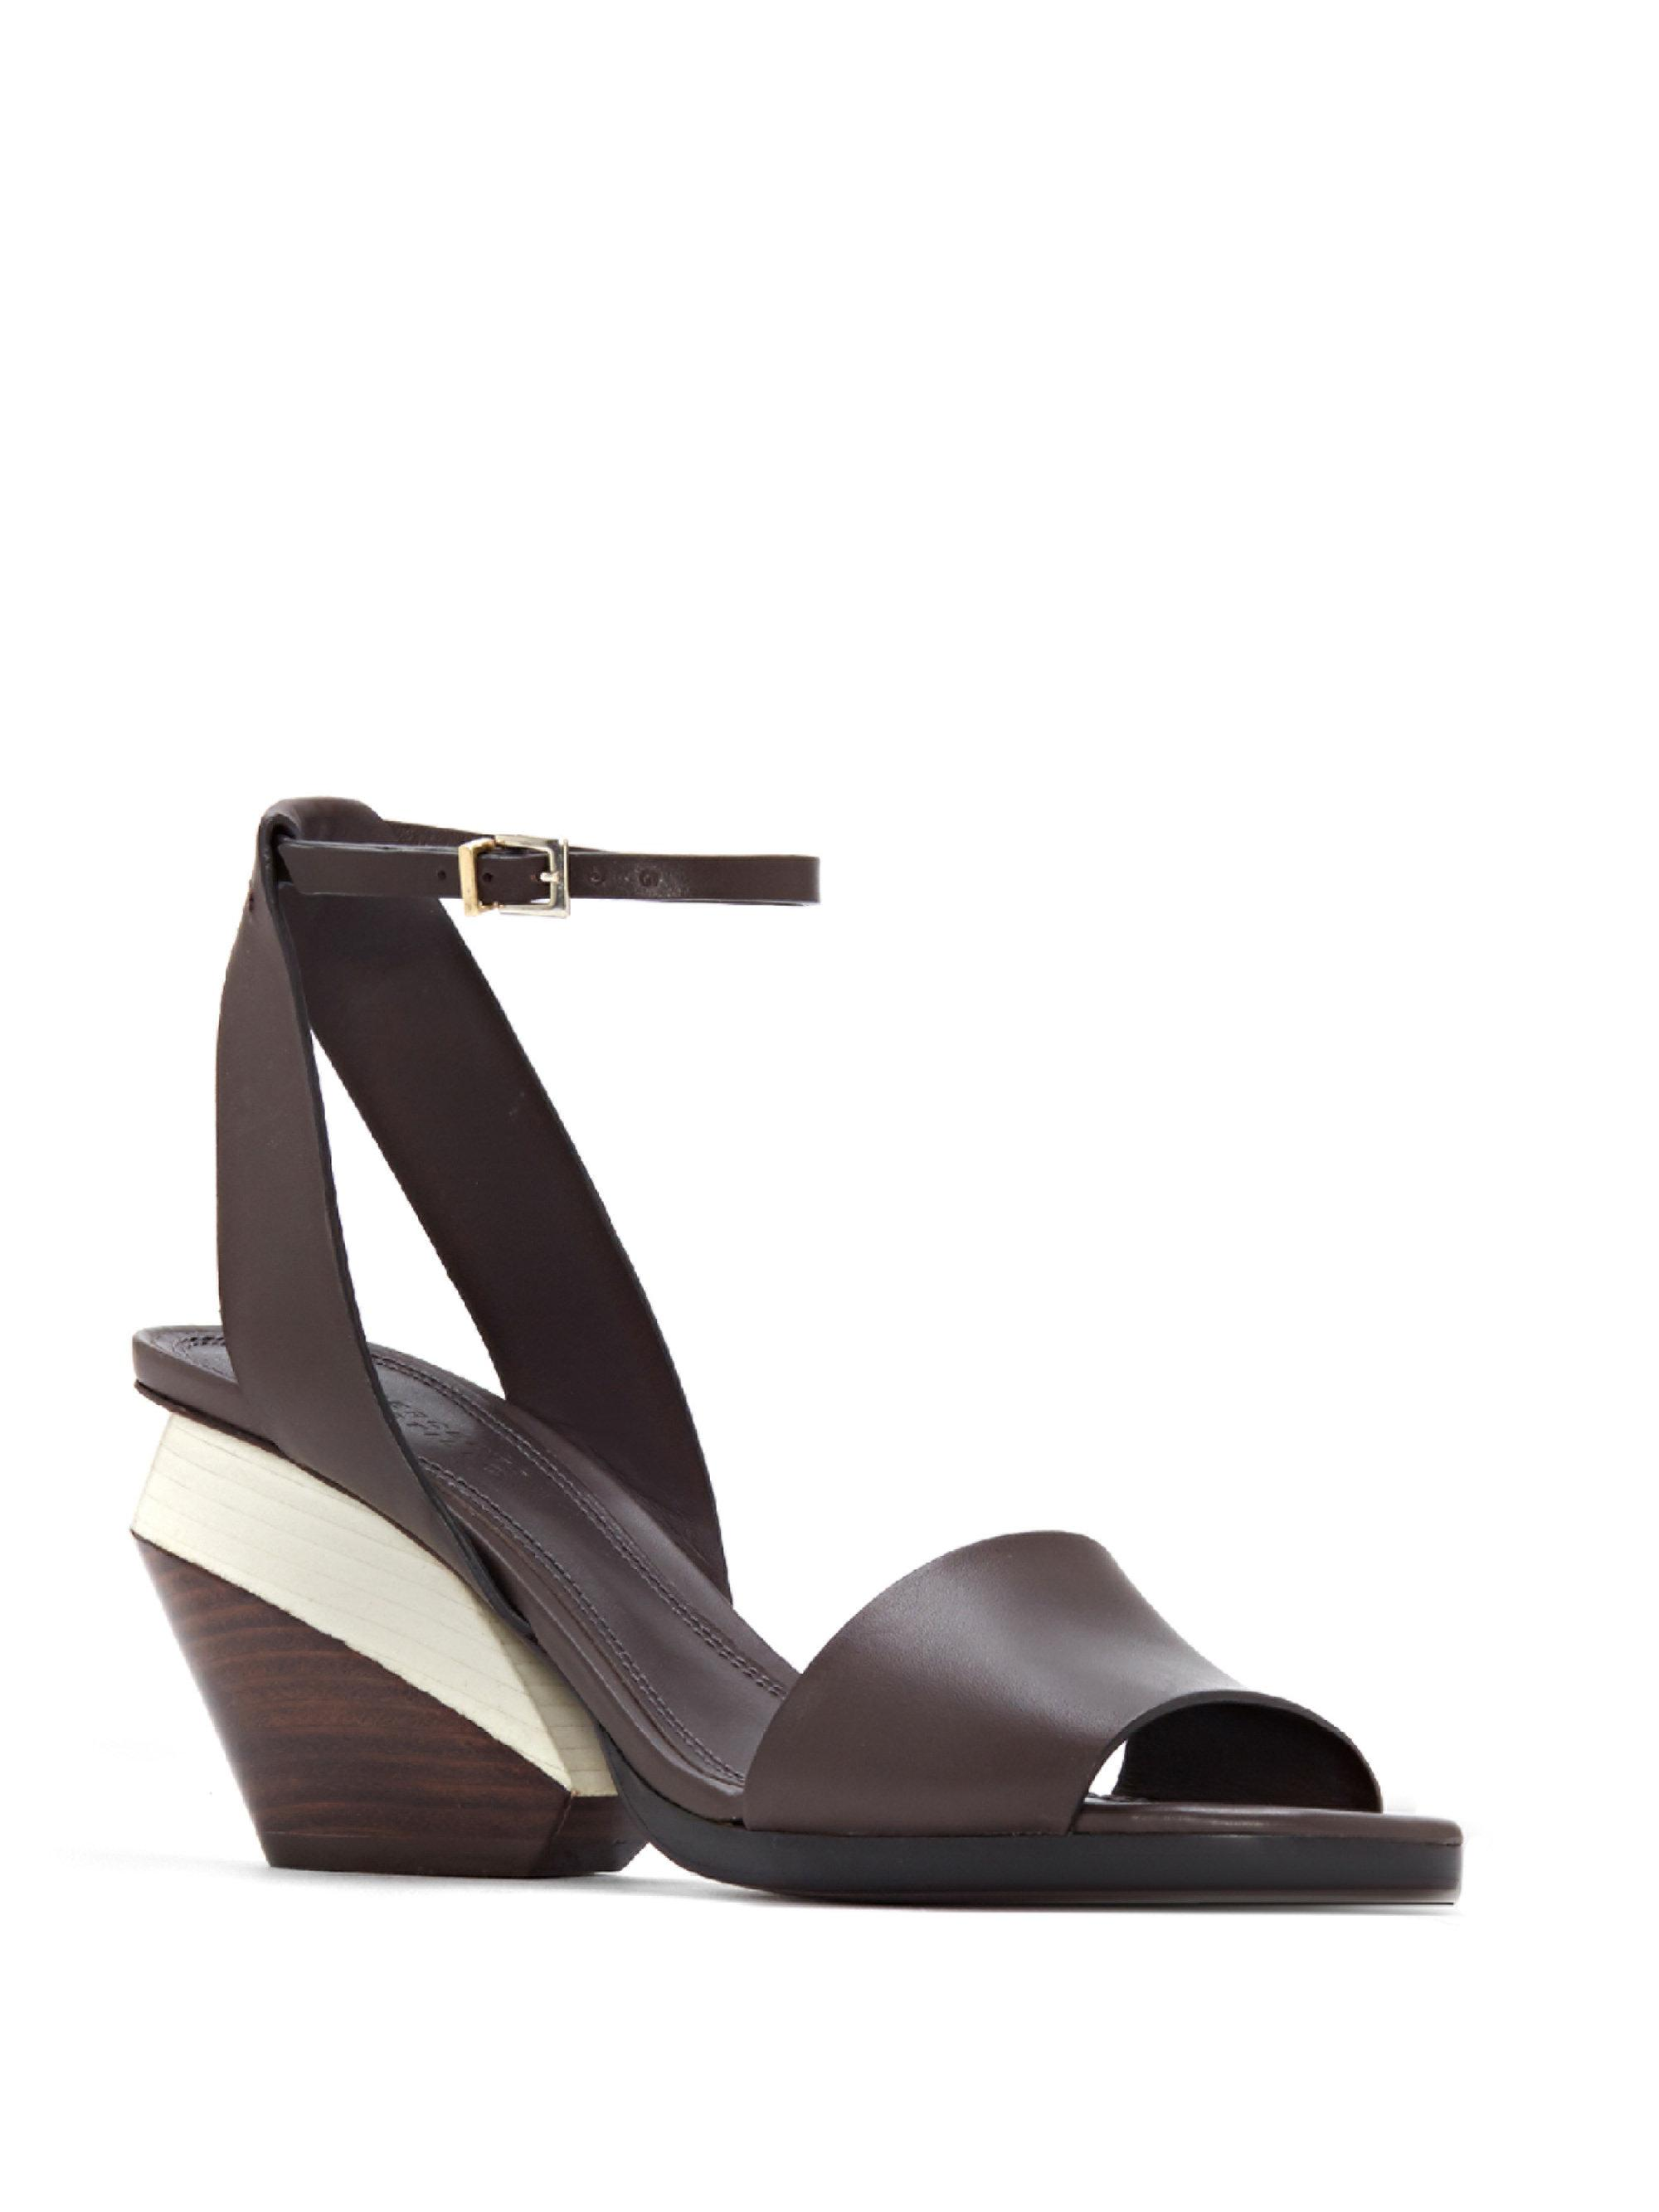 Mercedes Castillo Leather Sandal Amazon Cheap Price Clearance Enjoy Popular Online xFbbdF